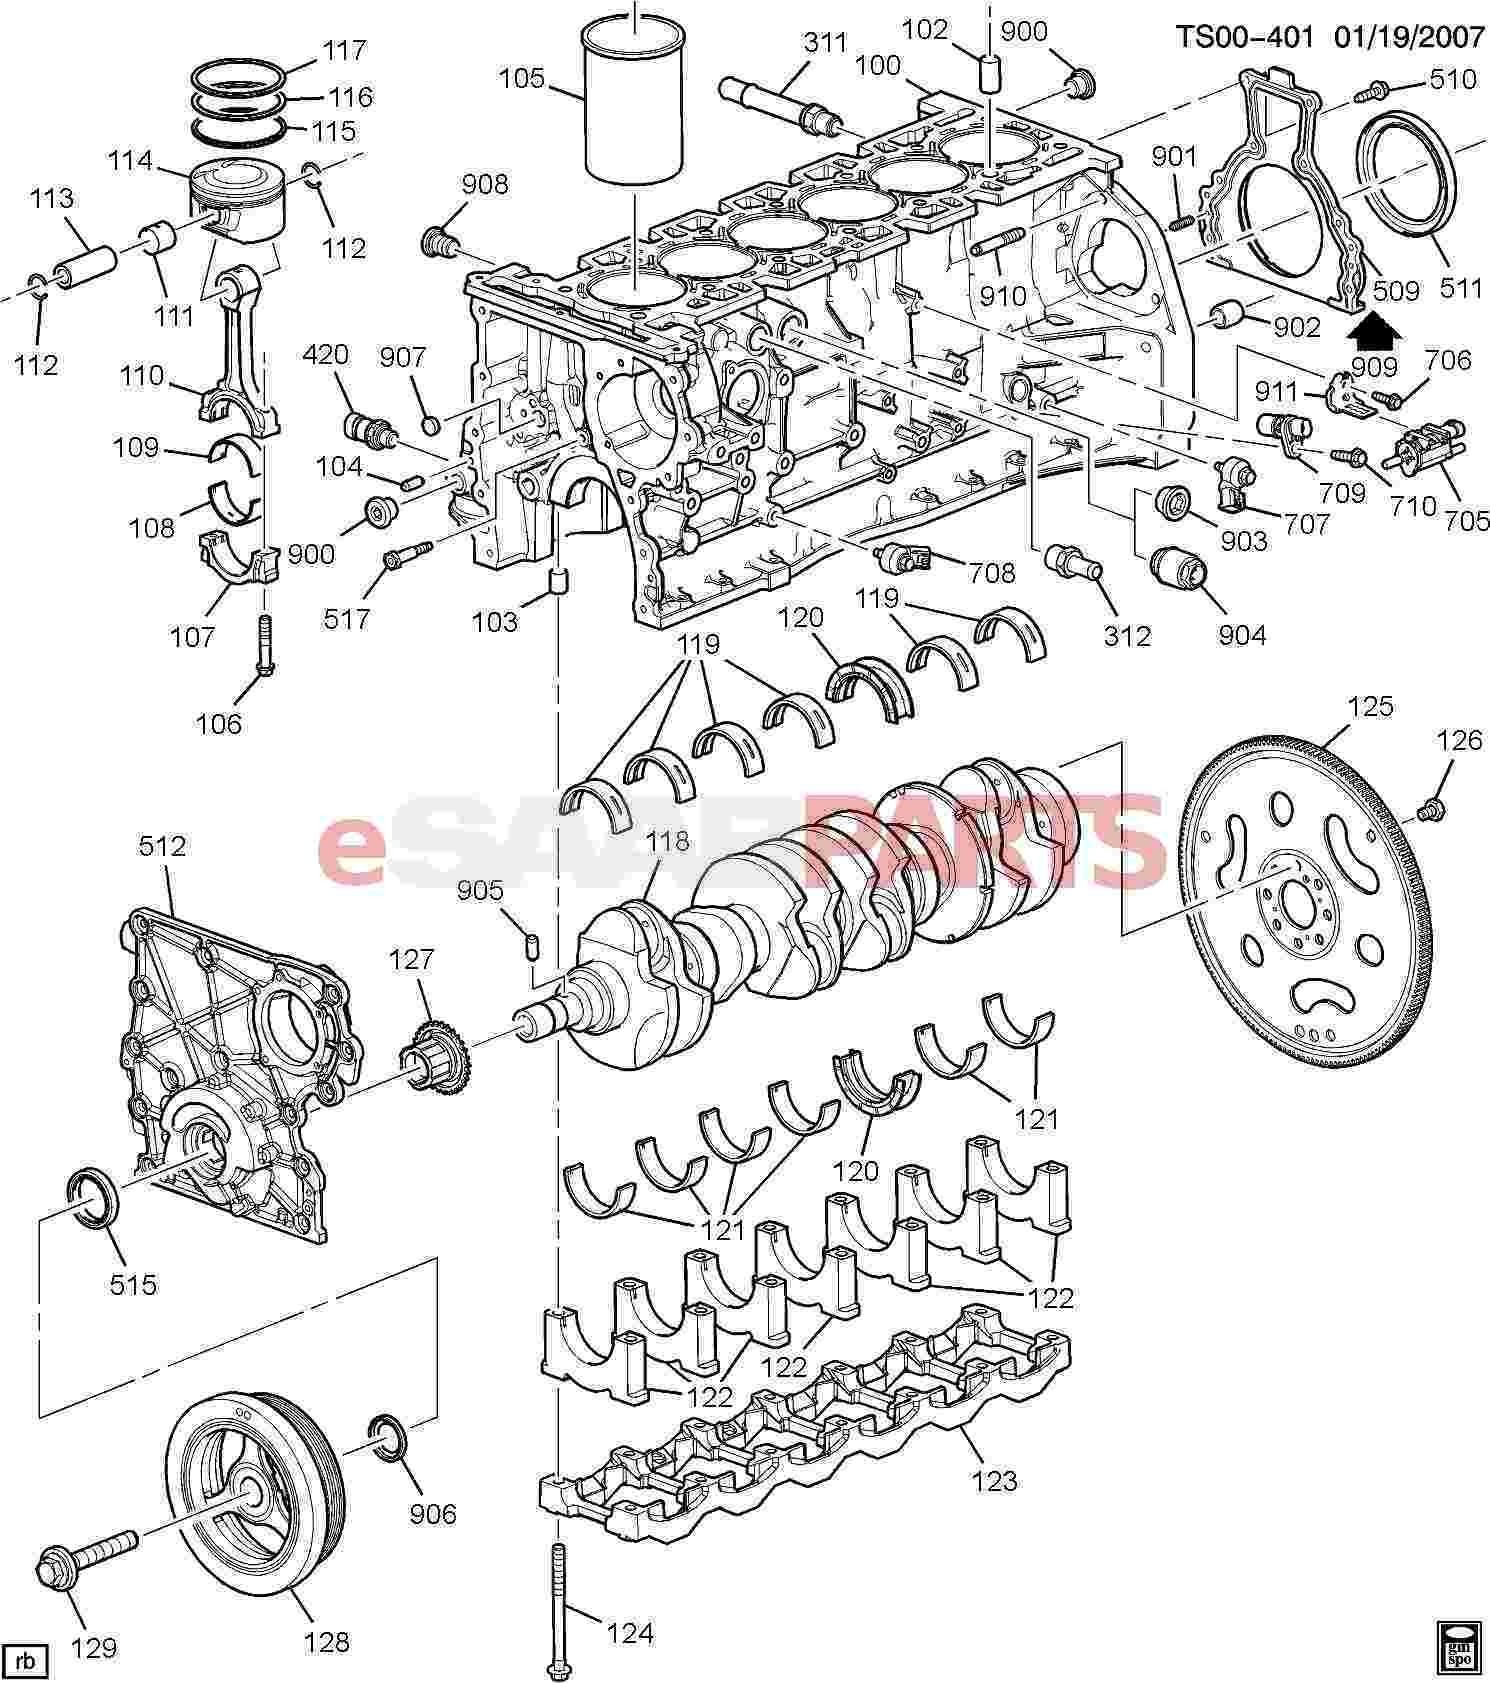 Lexus Es300 Engine Diagram 95 toyota Camry Engine Diagram